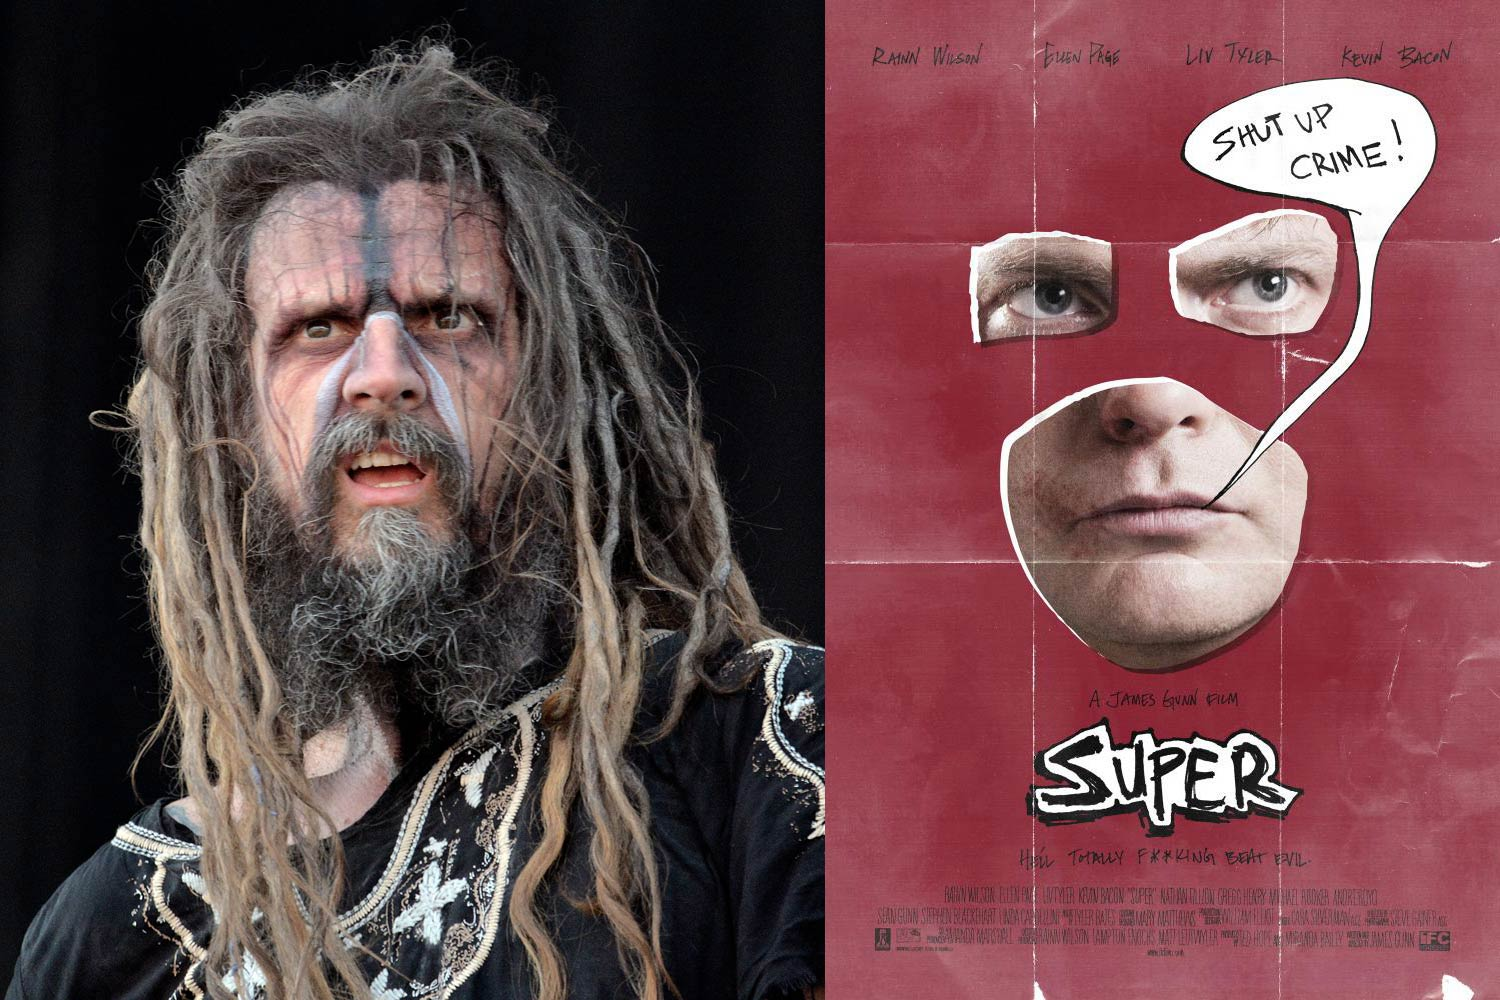 <strong>Rob Zombie, <i>Super</i></strong>                                   Zombie's voice, previously heard on albums including Hellbilly Deluxe and The Sinister Urge, helped motivate Rainn Wilson to become a superhero in the indie <i>Super</i>; director James Gunn used Zombie's voice again in his <i>Guardians of the Galaxy</i>.